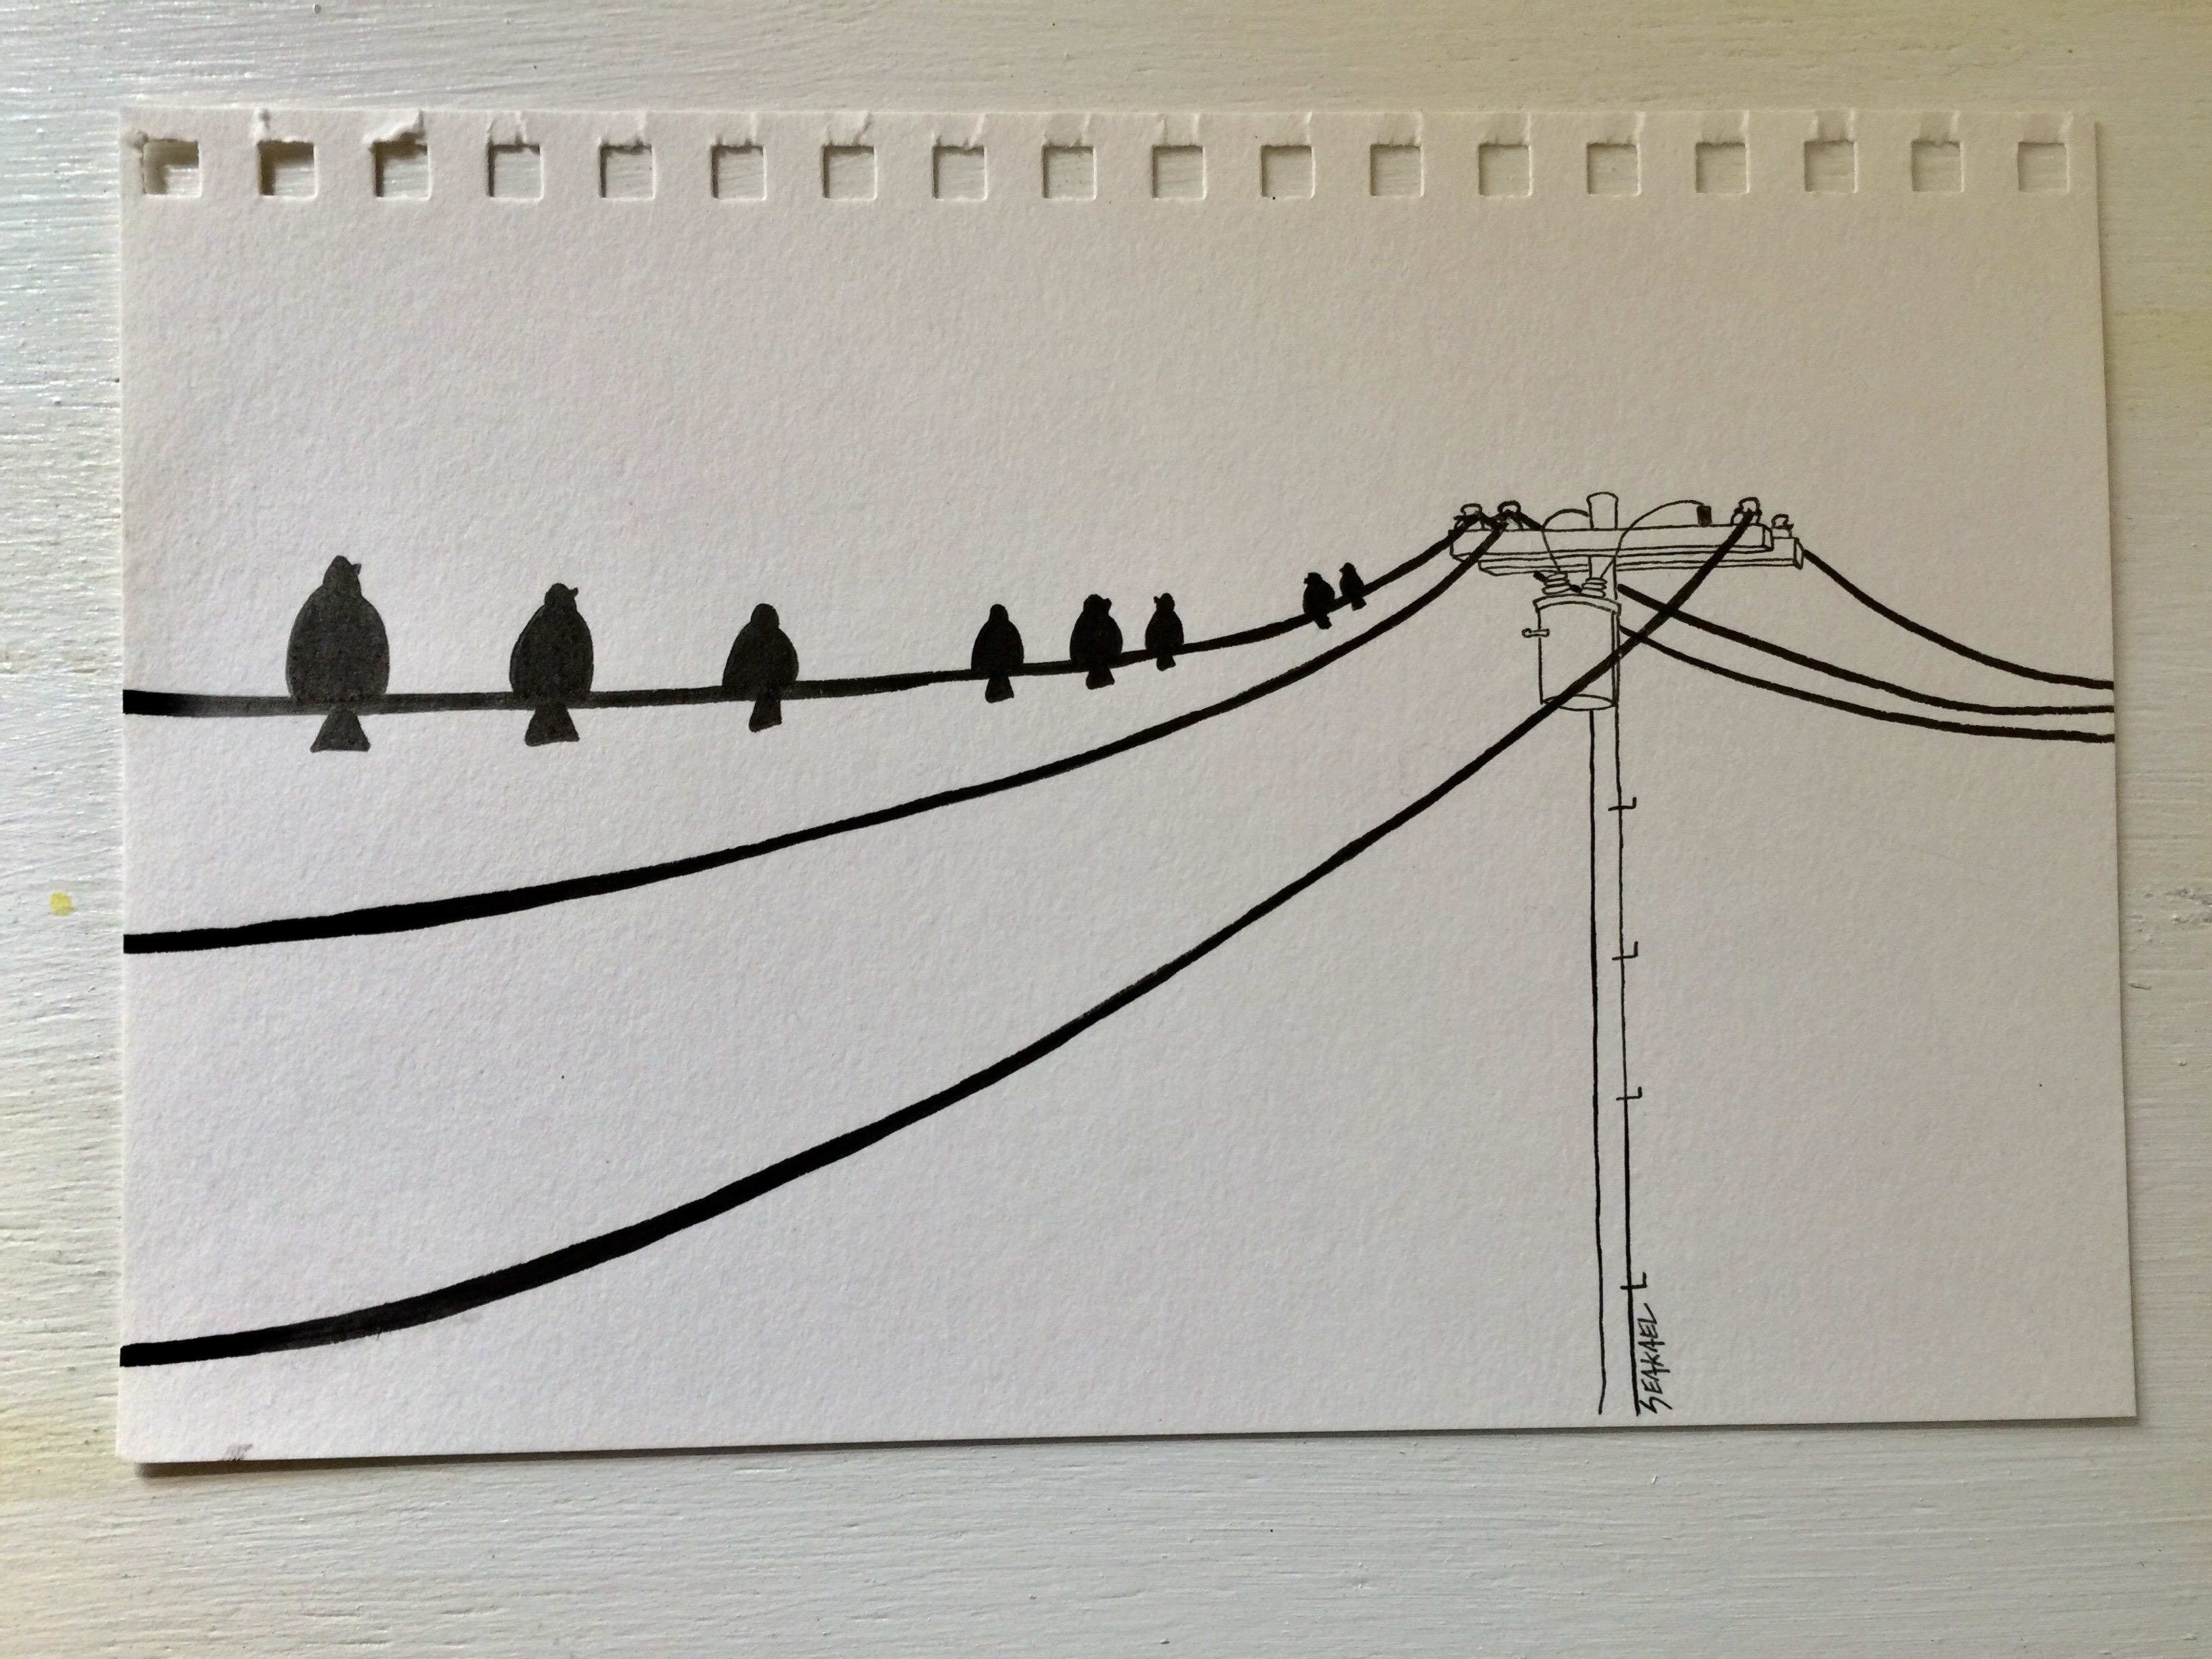 3264x2448 Birds On A Wire Sketch. Telephone Pole. Telephone Wire. Draw